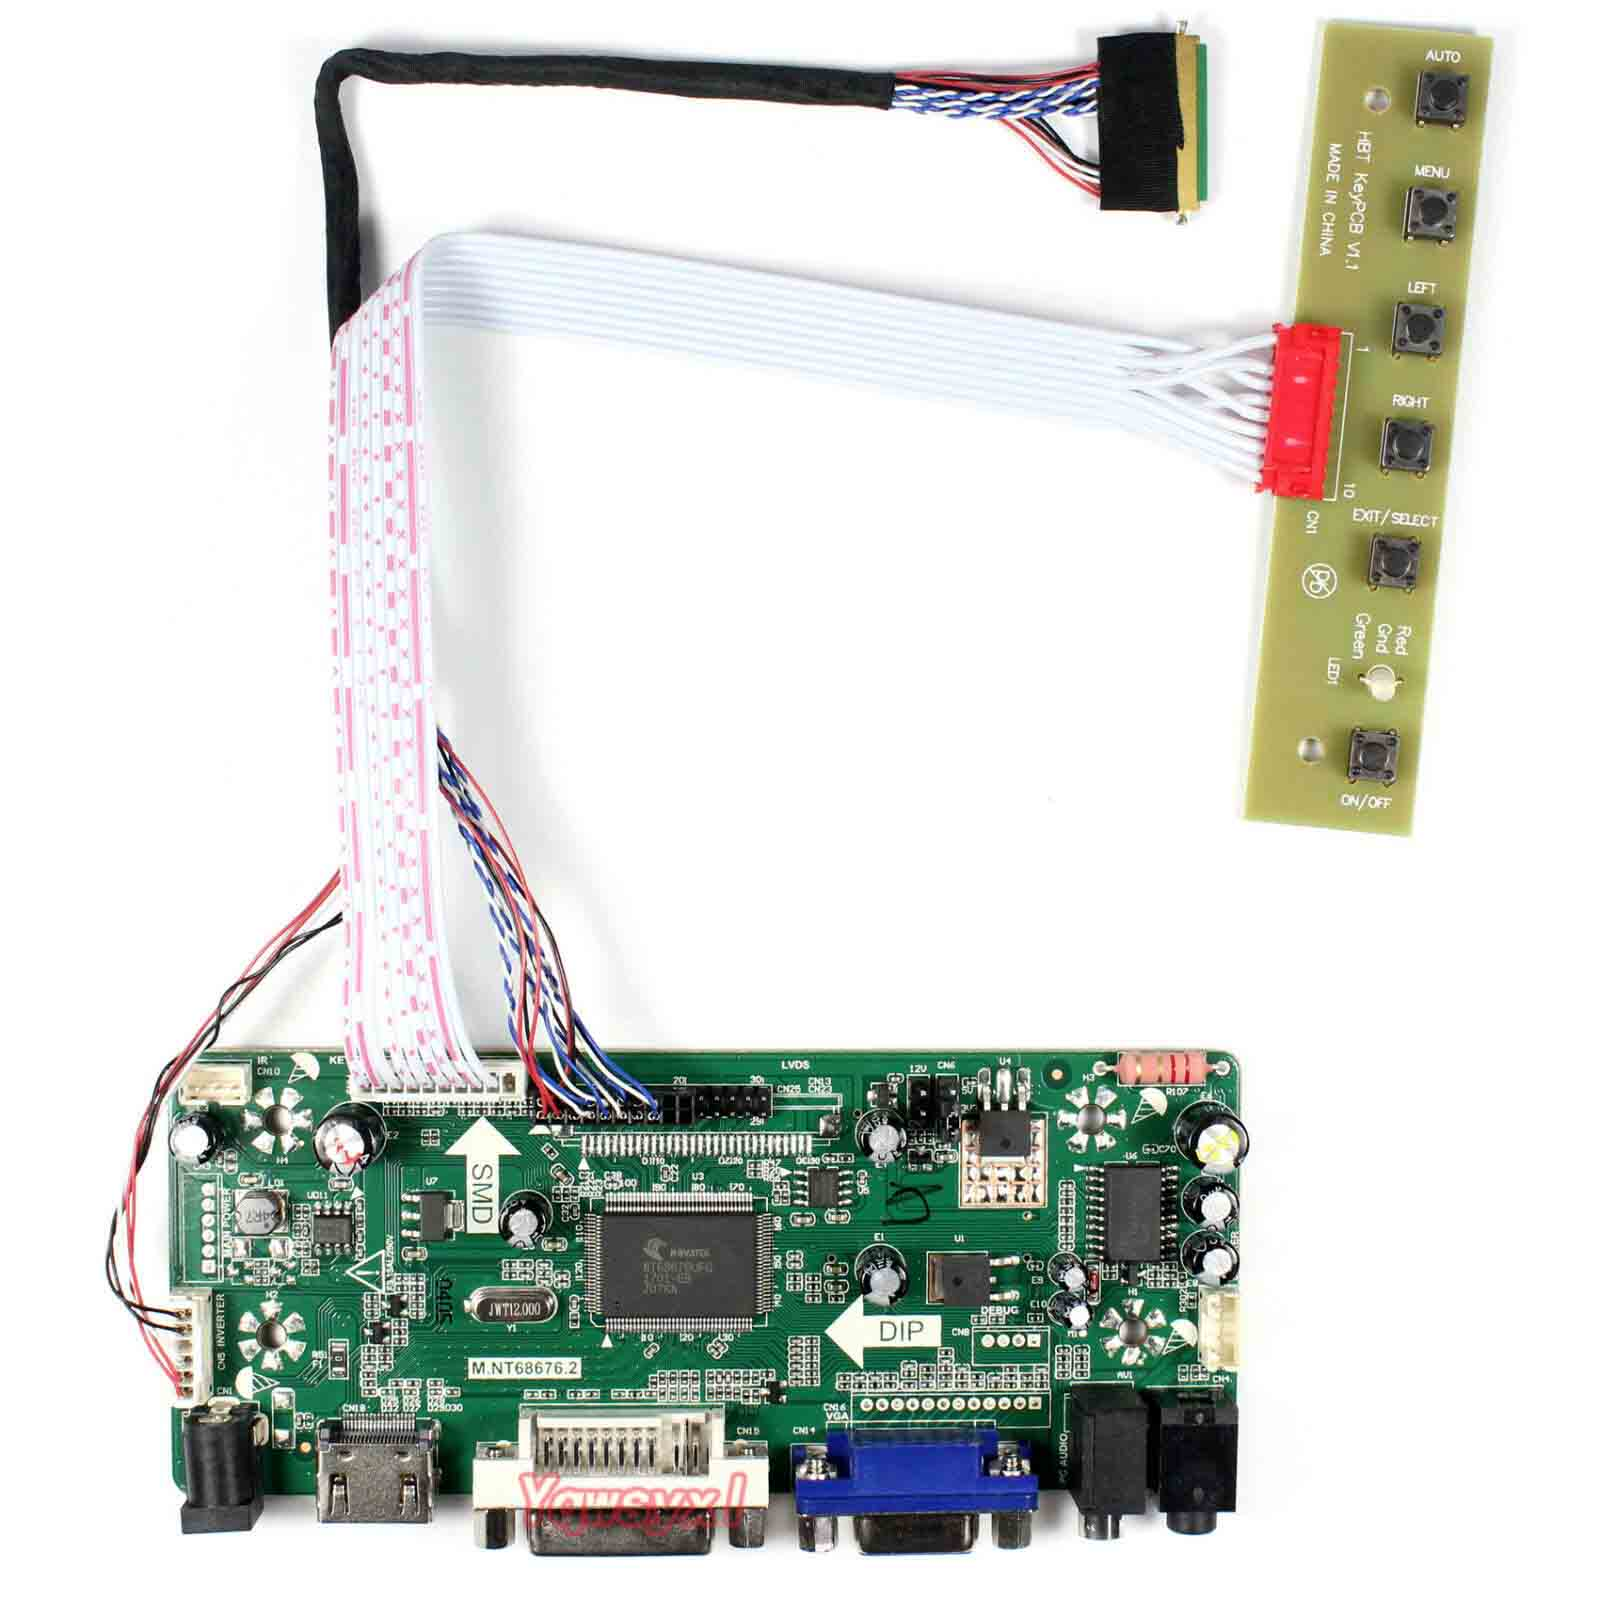 Yqwsyxl Control Board Monitor Kit For LP156WH4(TL)(N2)  LP156WH4-TLN2 HDMI+DVI+VGA LCD LED Screen Controller Board Driver